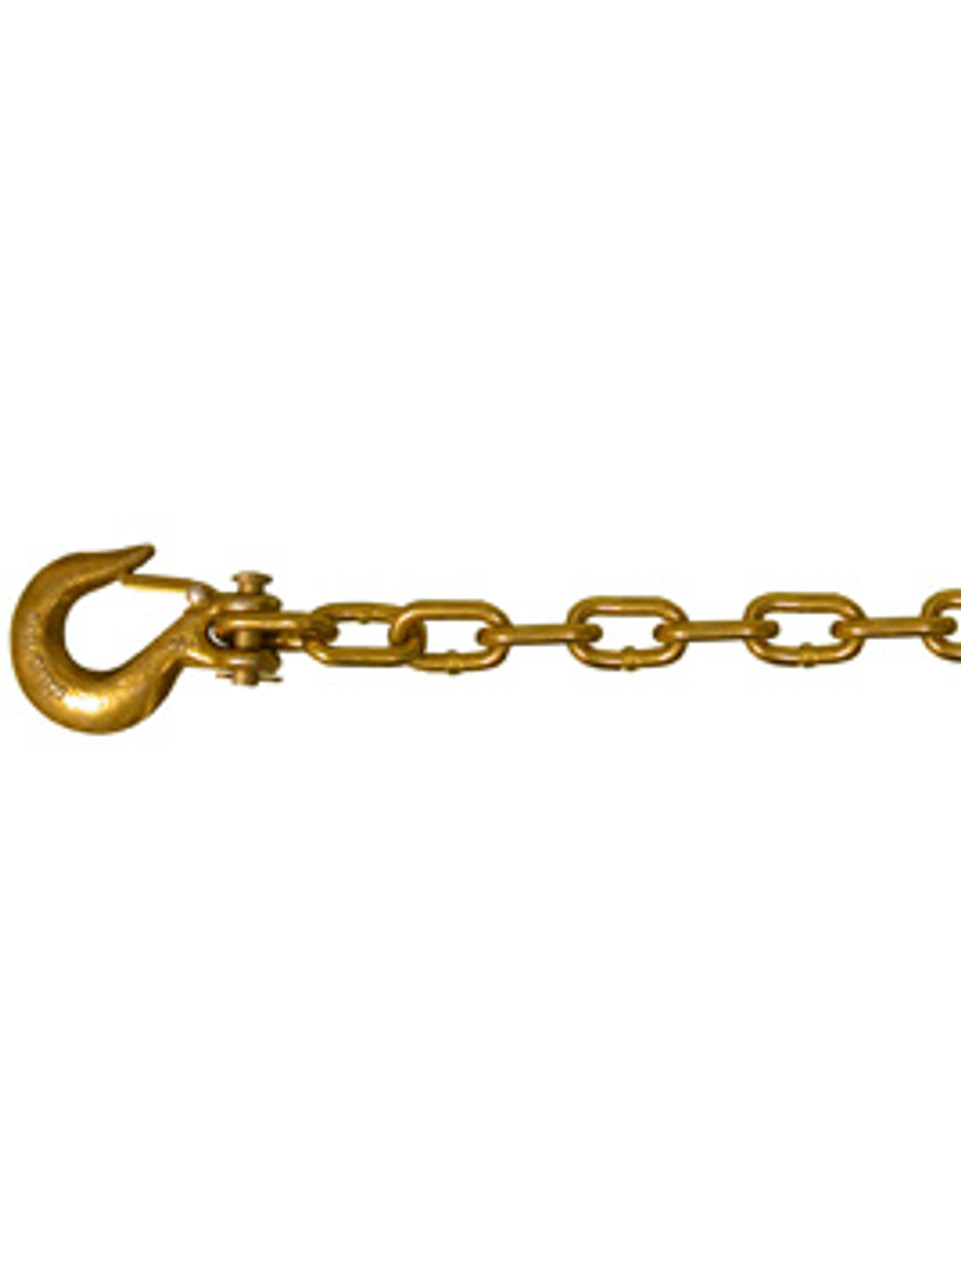 "SC3538CH --- 3/8"" Transport Safety Chain - 35"" Length"